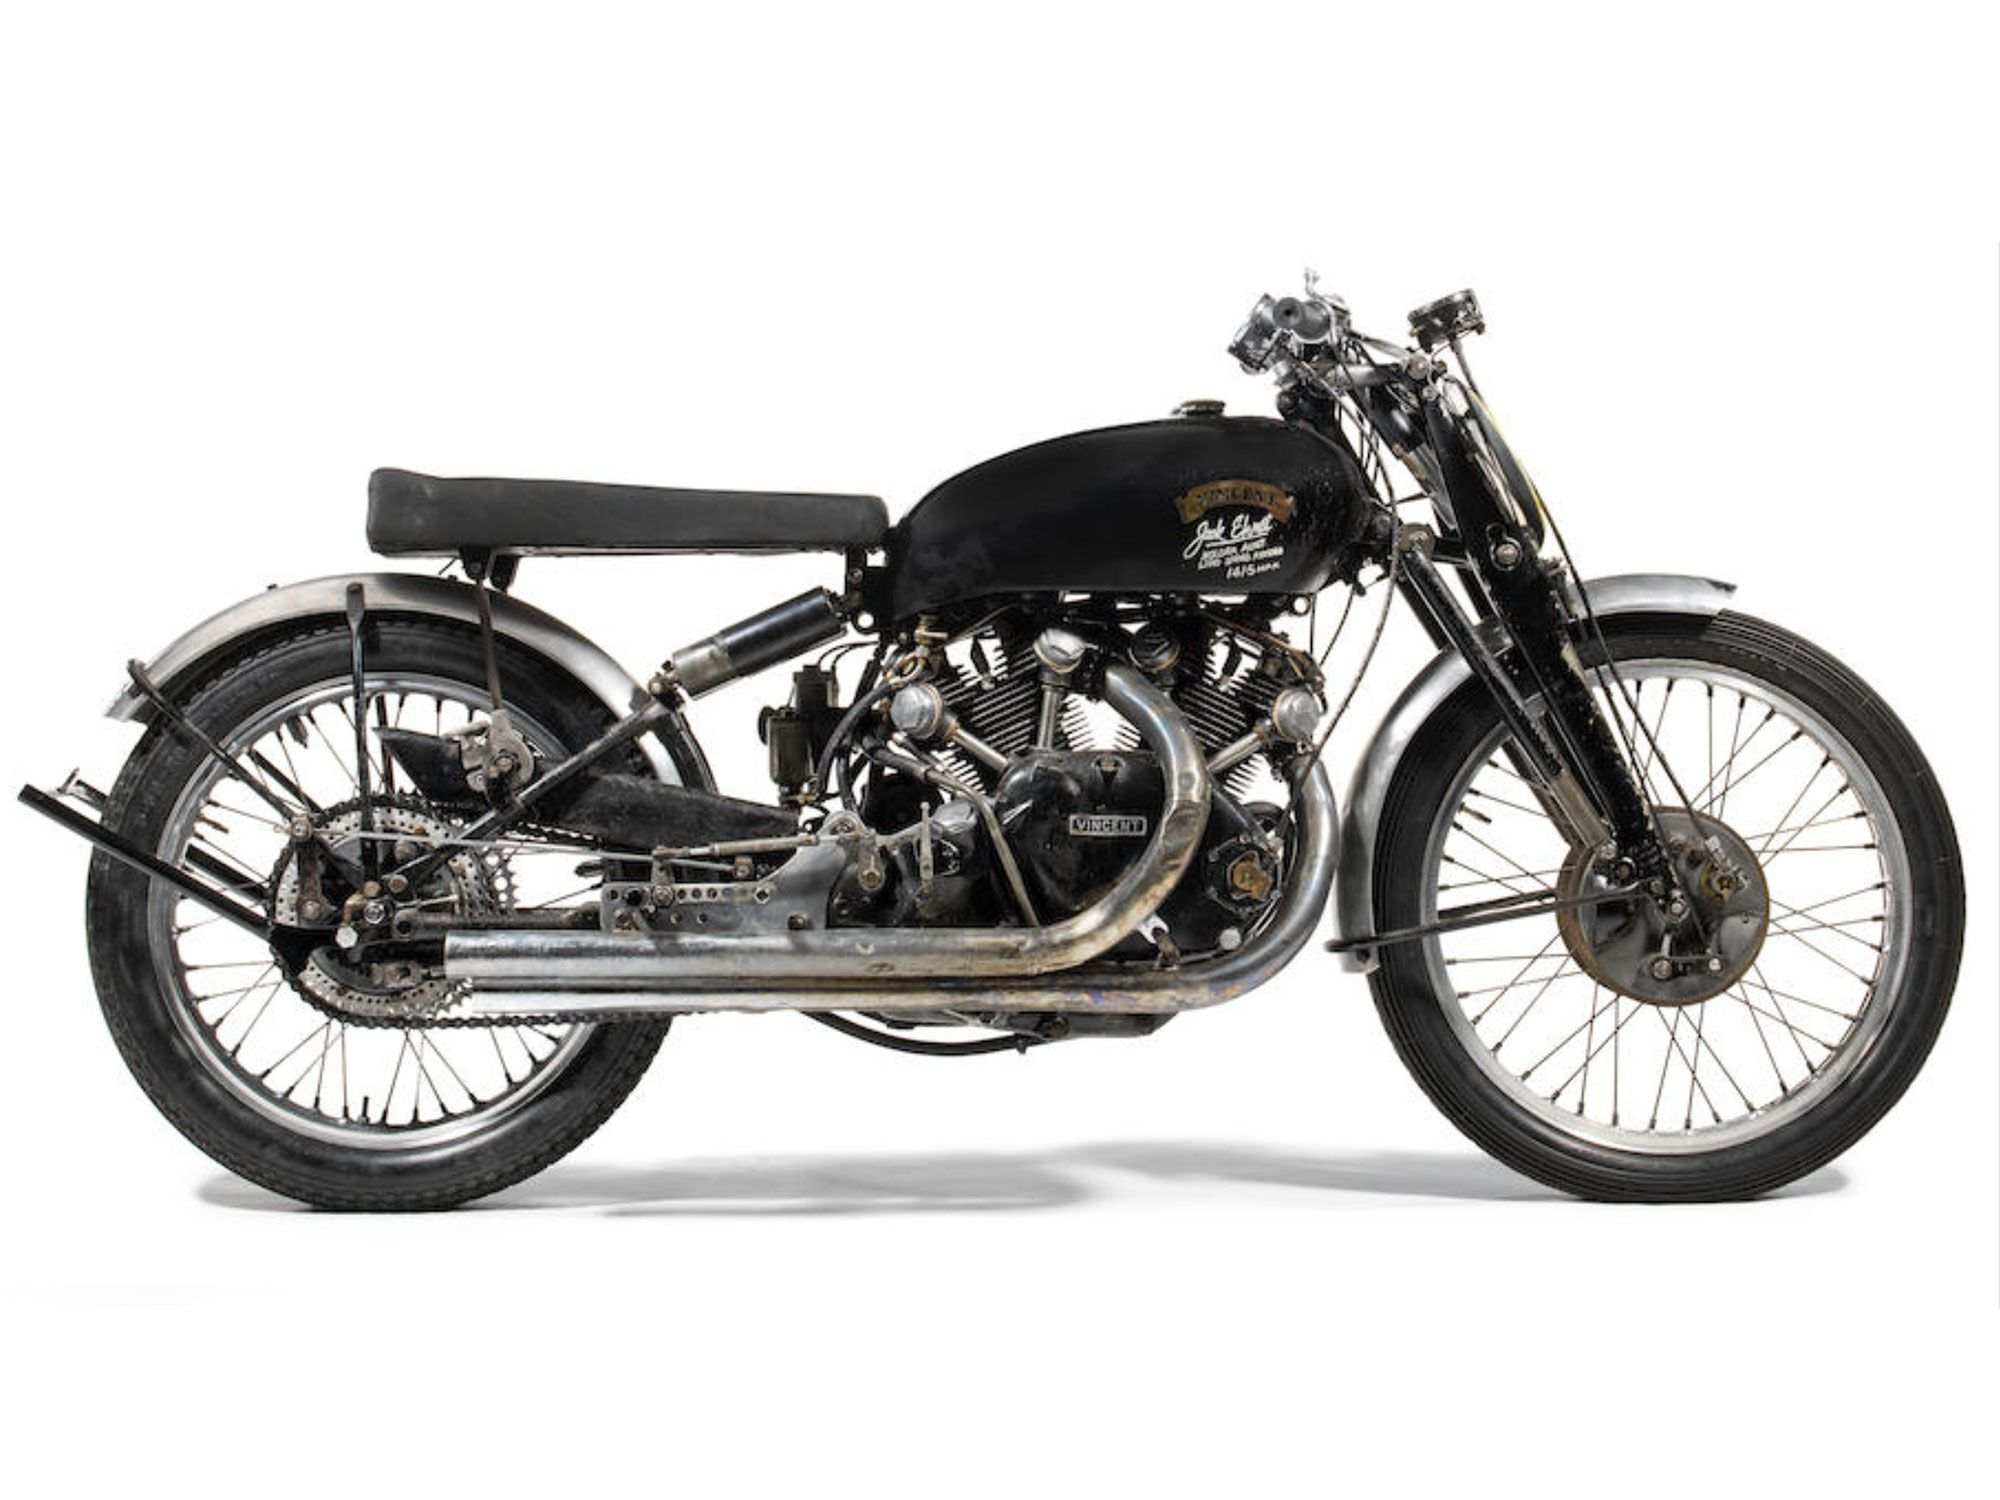 This Vincent tops our list of the world's 15 most expensive motorcycles. How much? Read on.